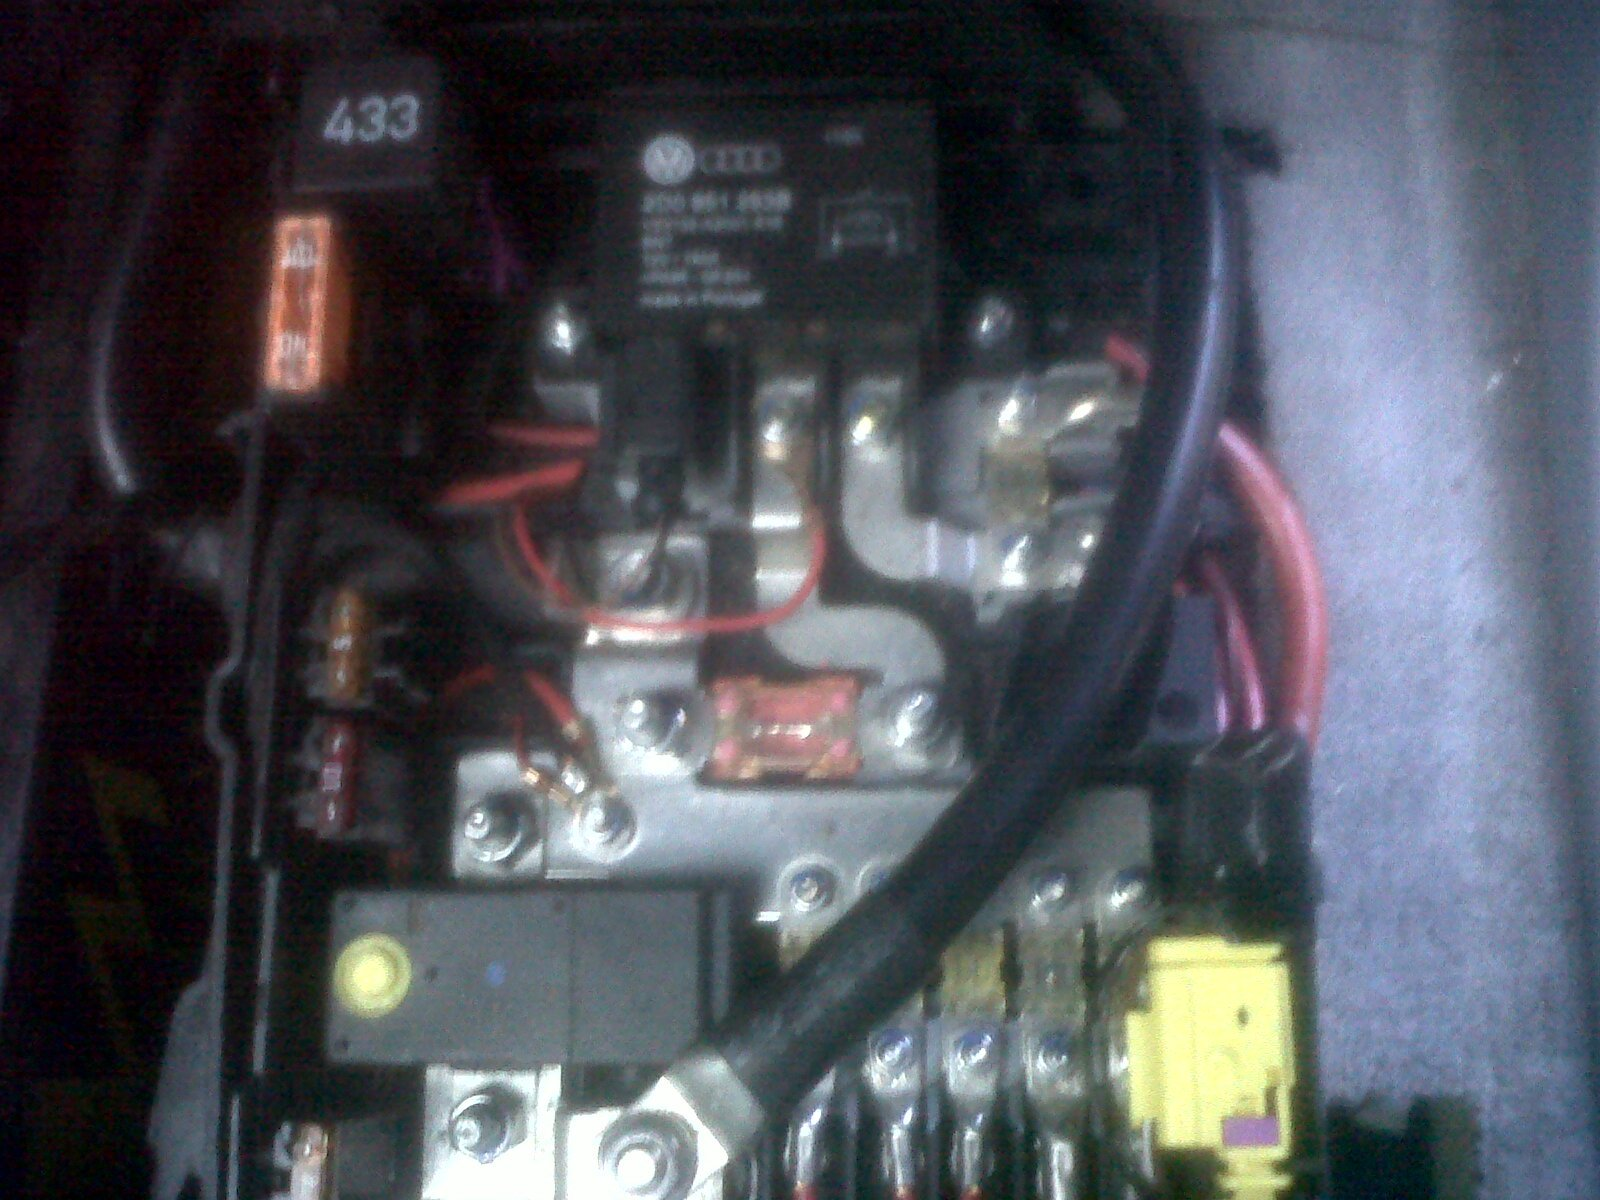 ive    tdiafter   trivial electrical problems  replaced  battery